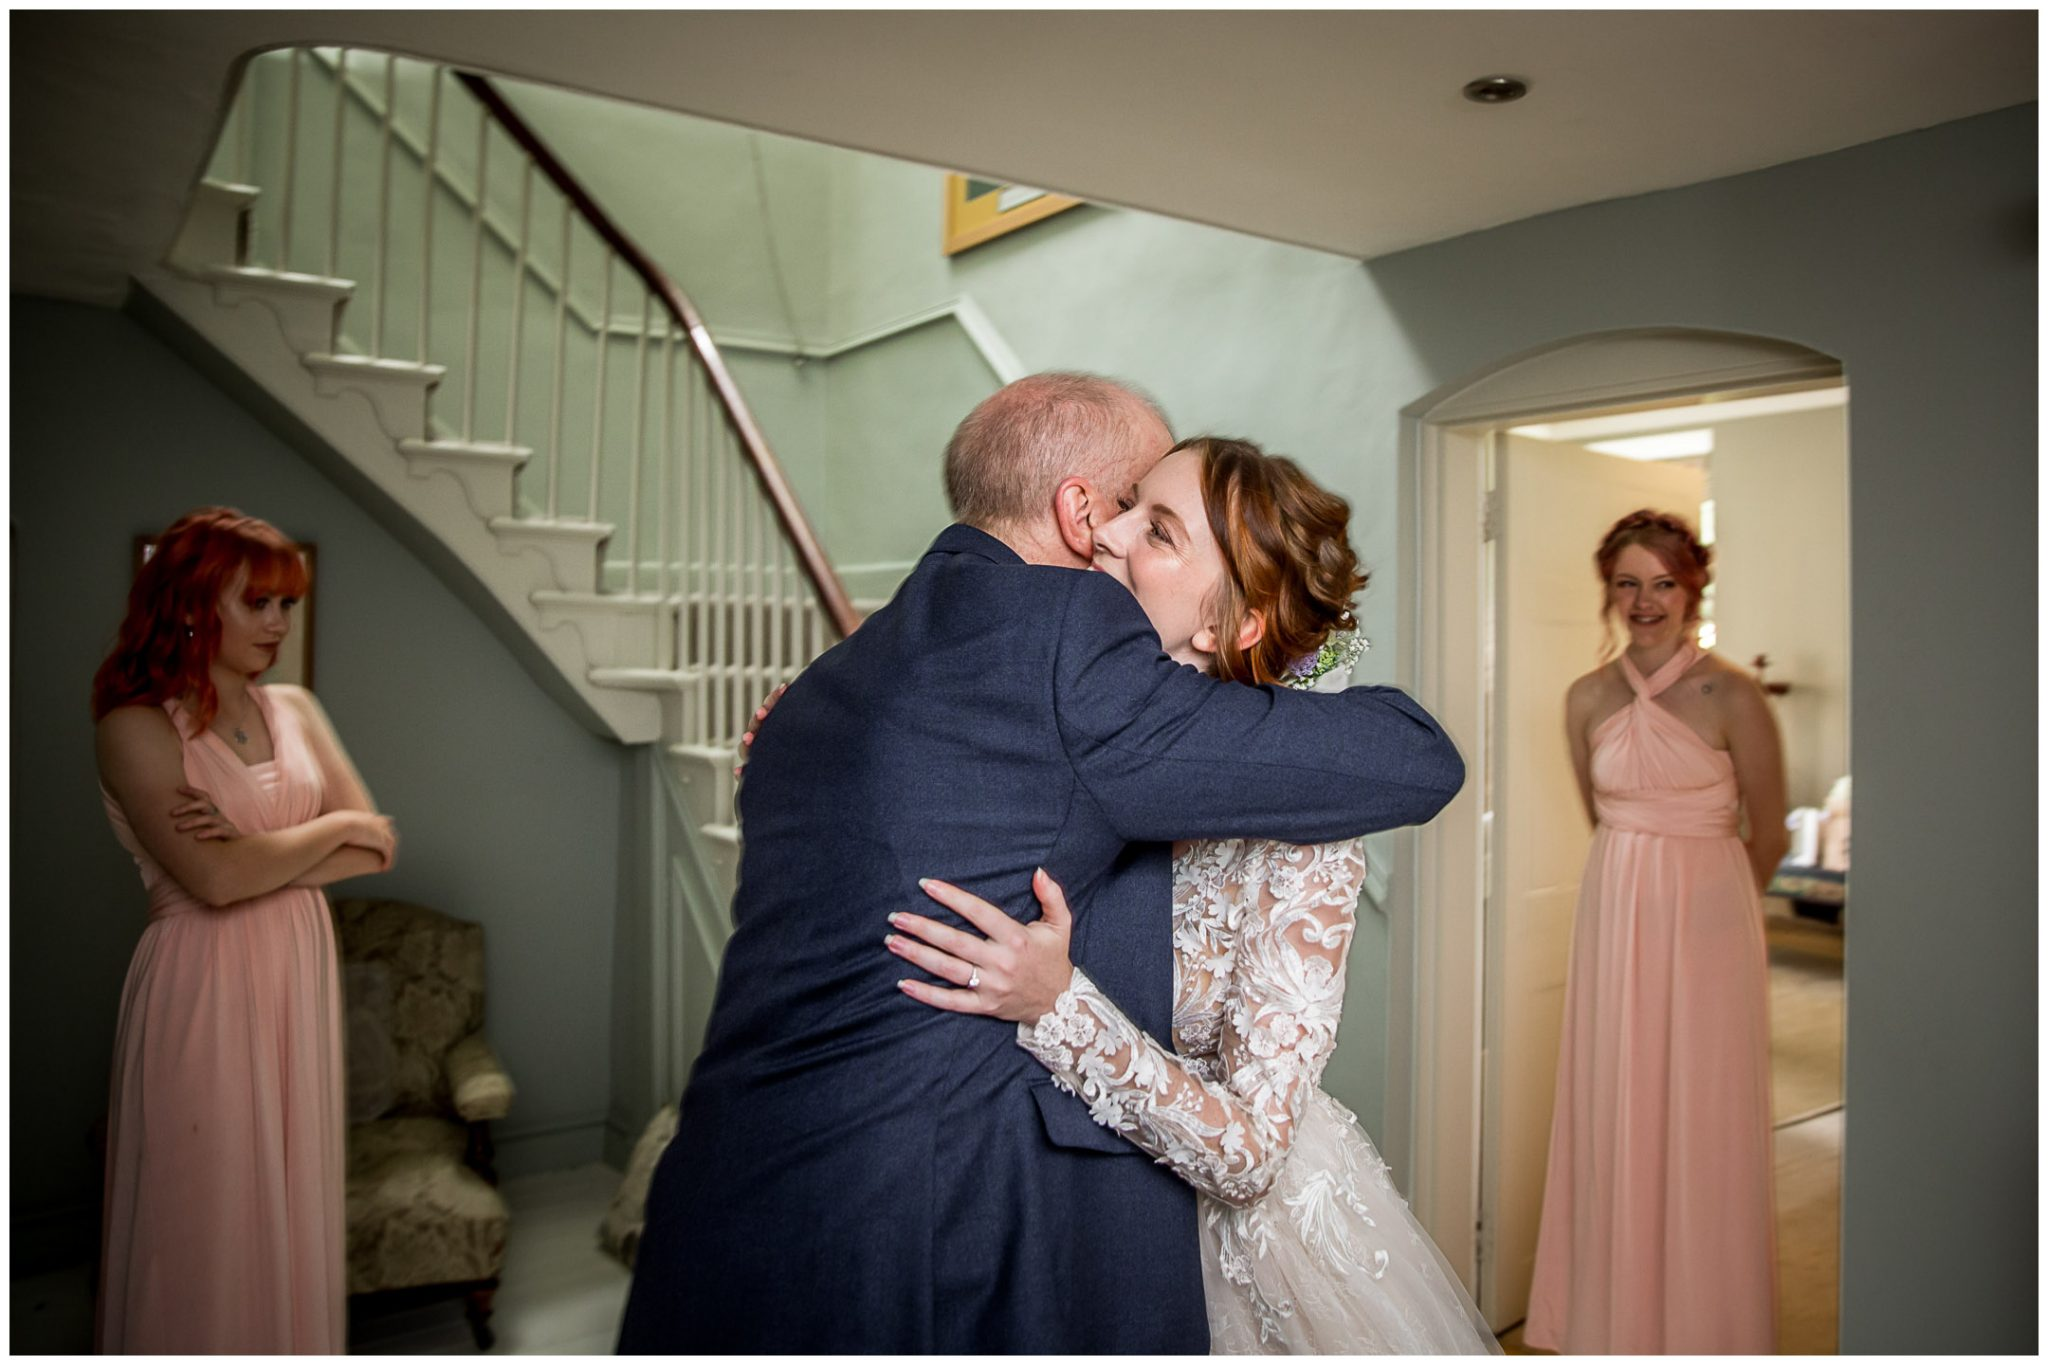 Father of the bride sees his daughter in her wedding dress